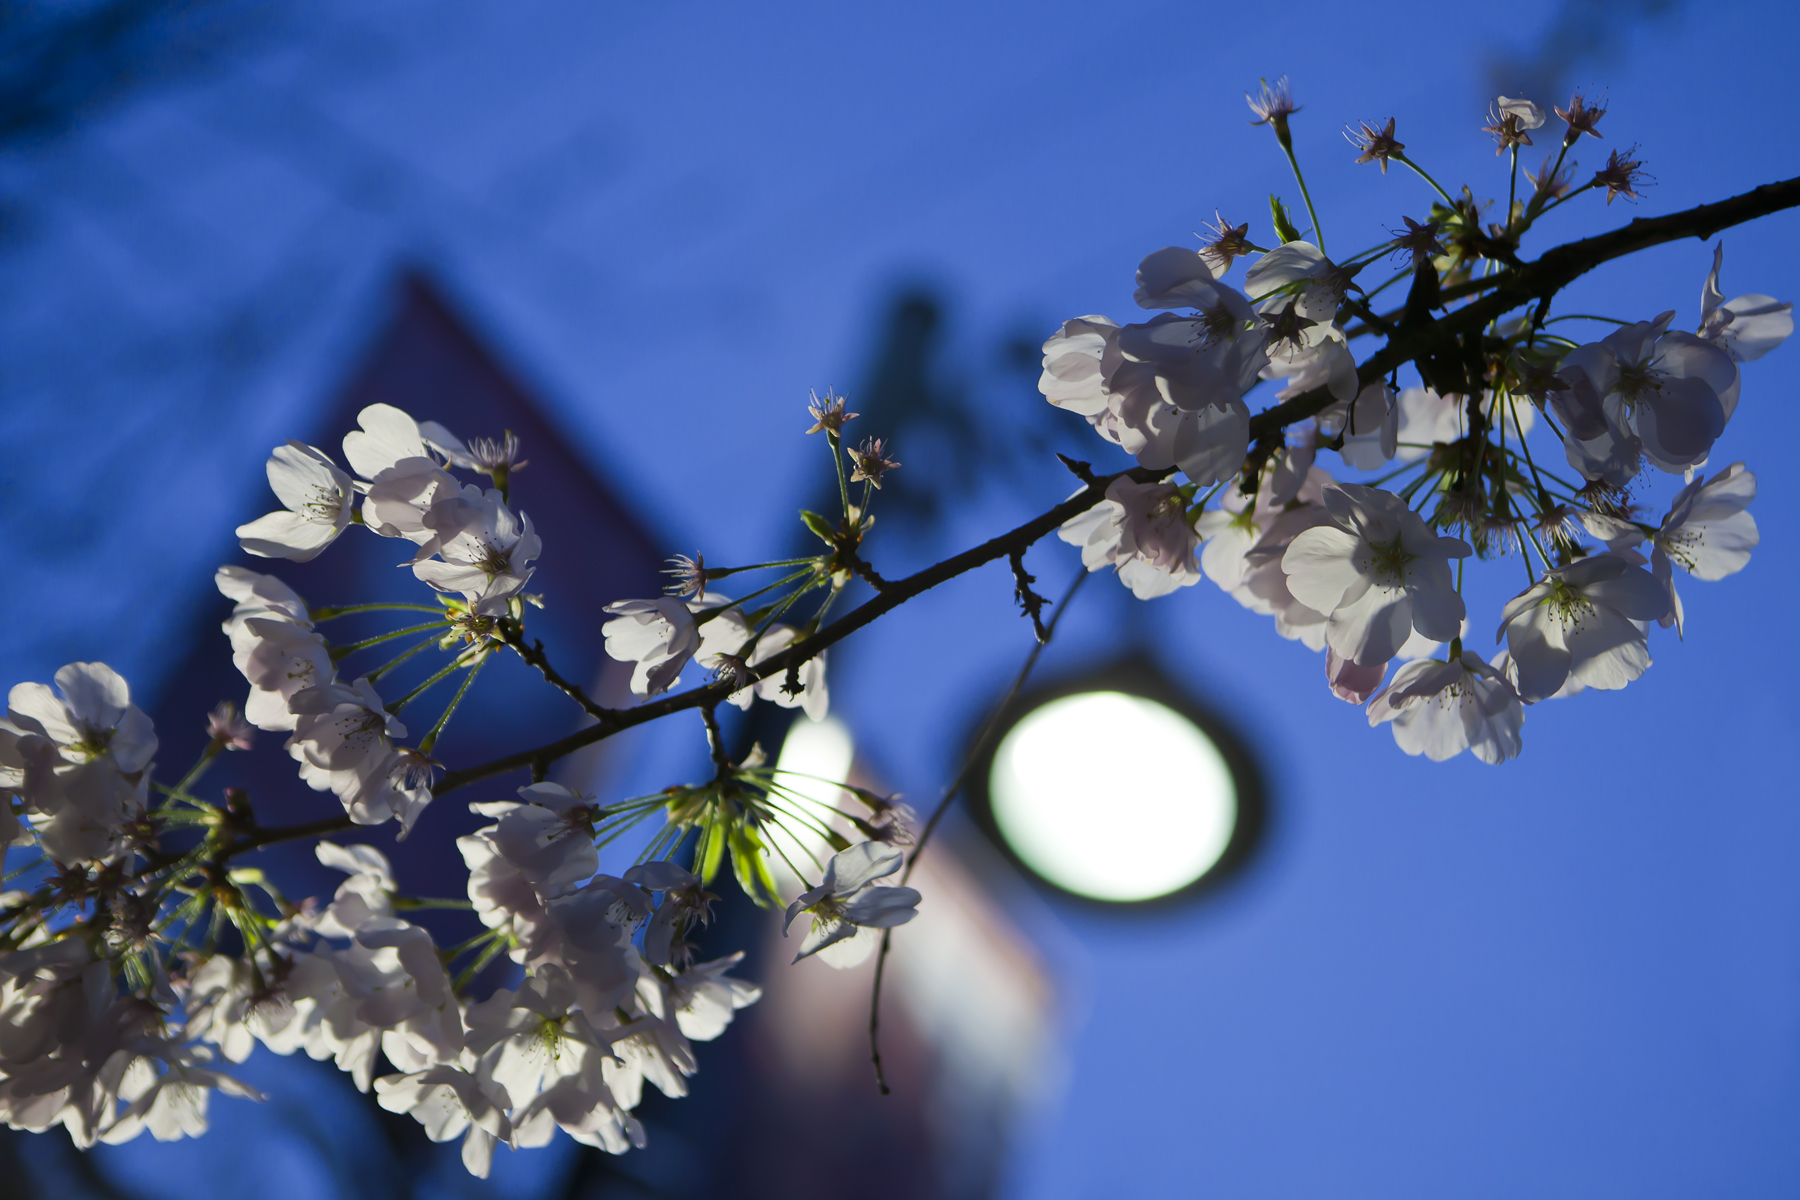 Cherry blossoms at night in Yaletown